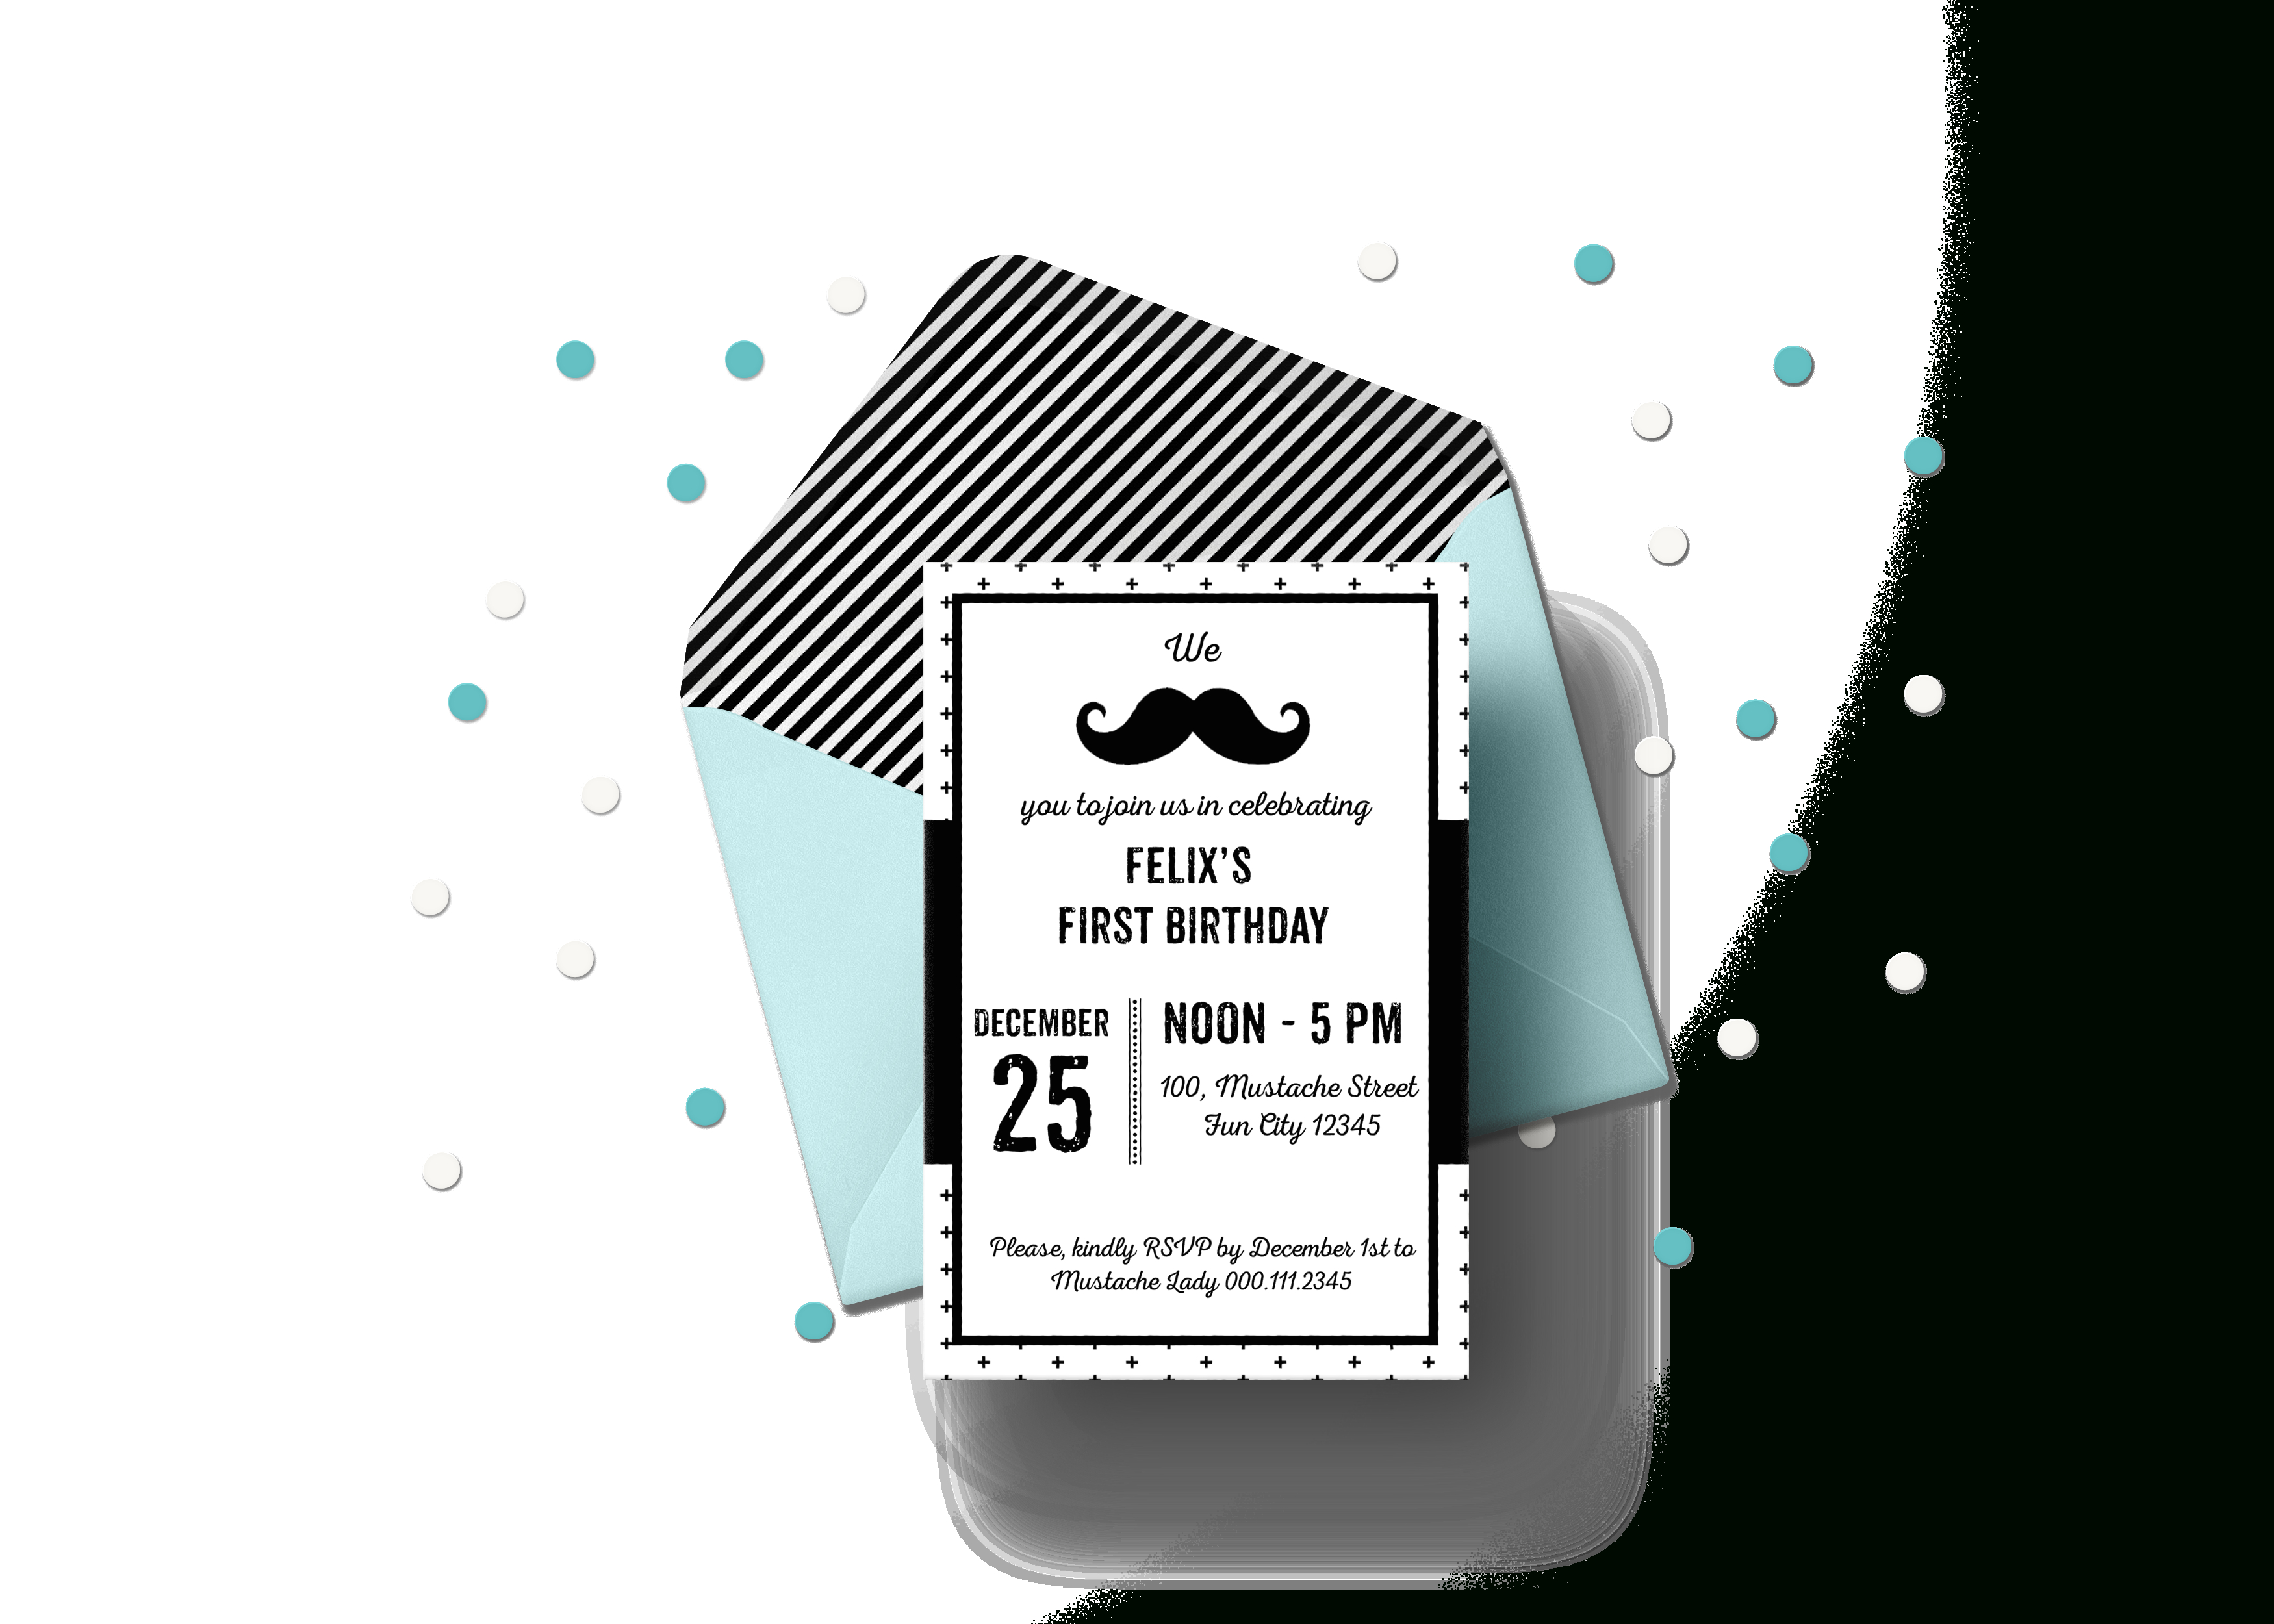 Free Printable Mustache Party Invitations - Blank & Editable - Free Printable Event Invitations